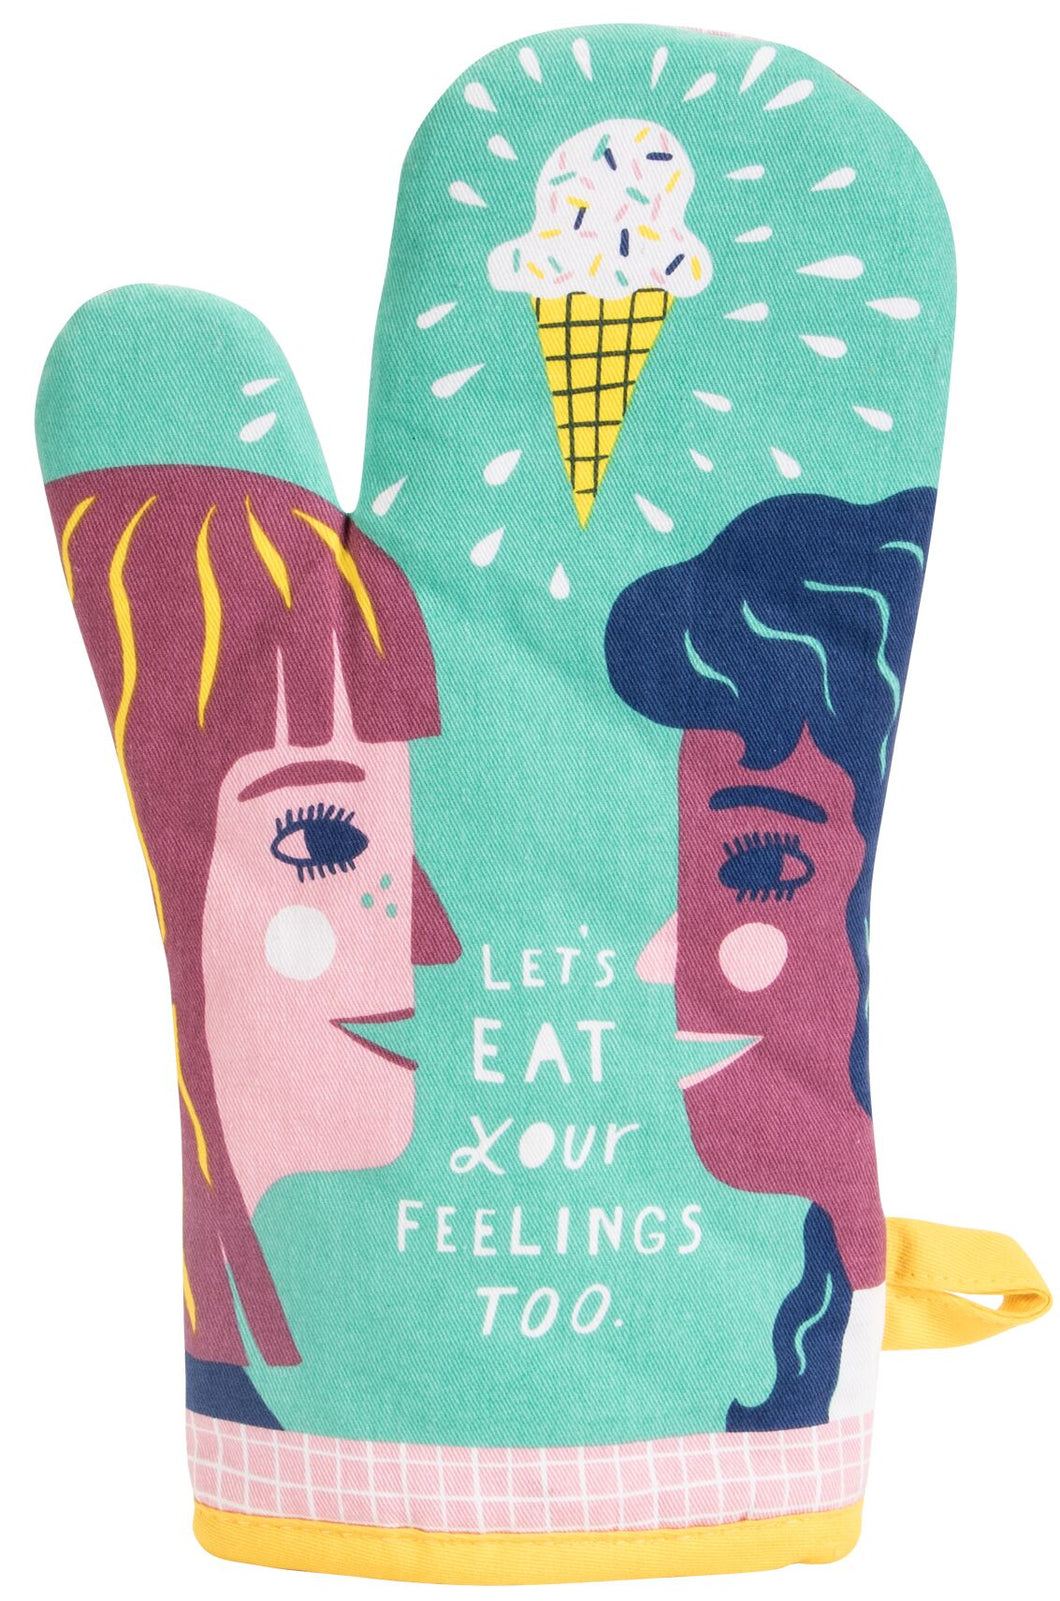 Let's Eat Your Feelings Oven Mitt